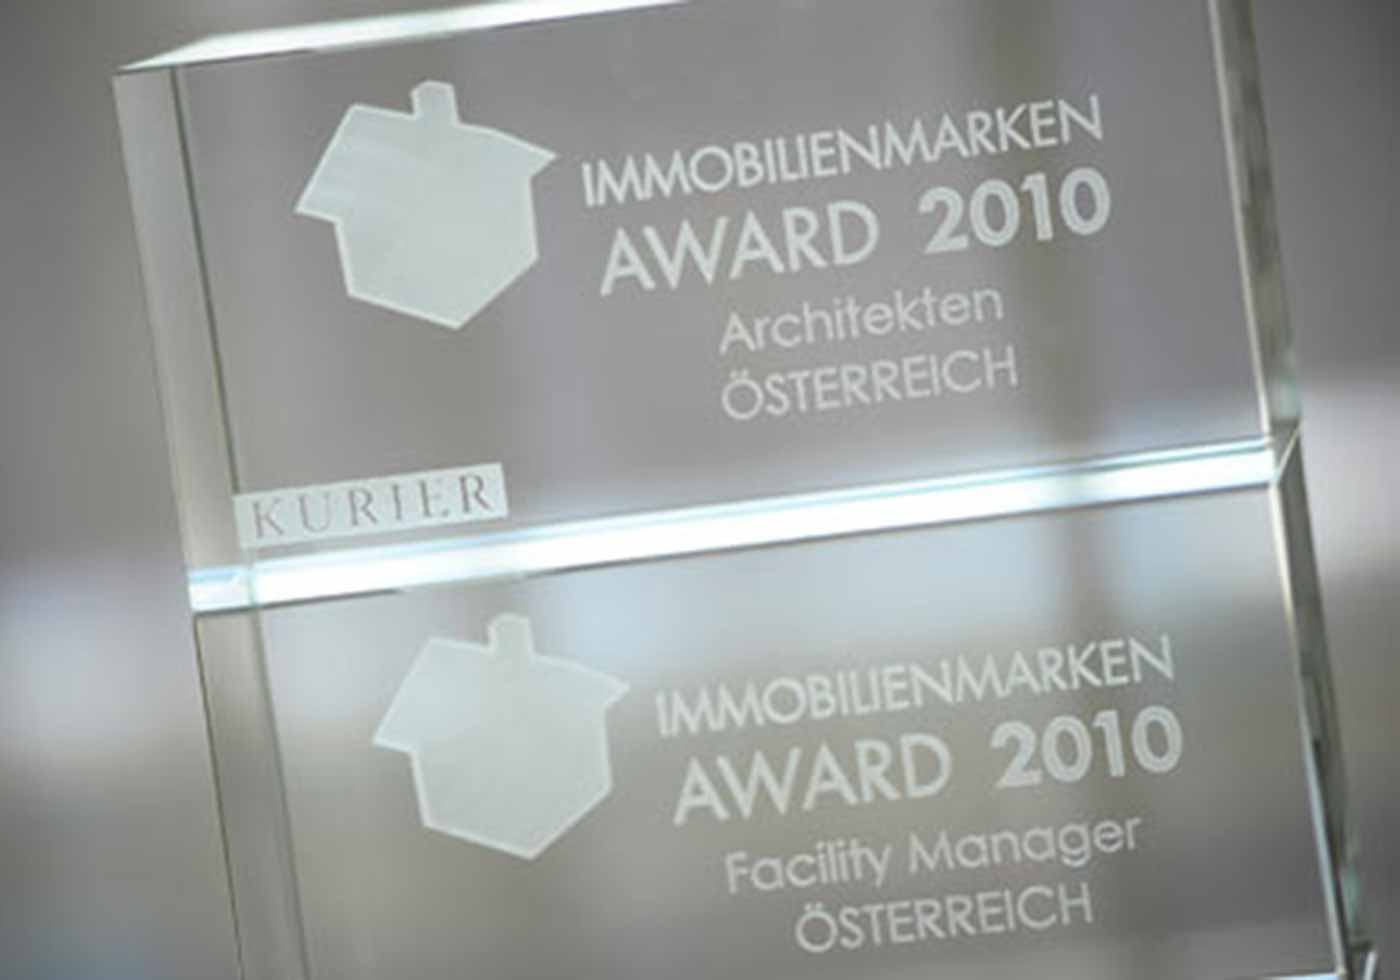 The Real Estate Brand Award 2010, Austria